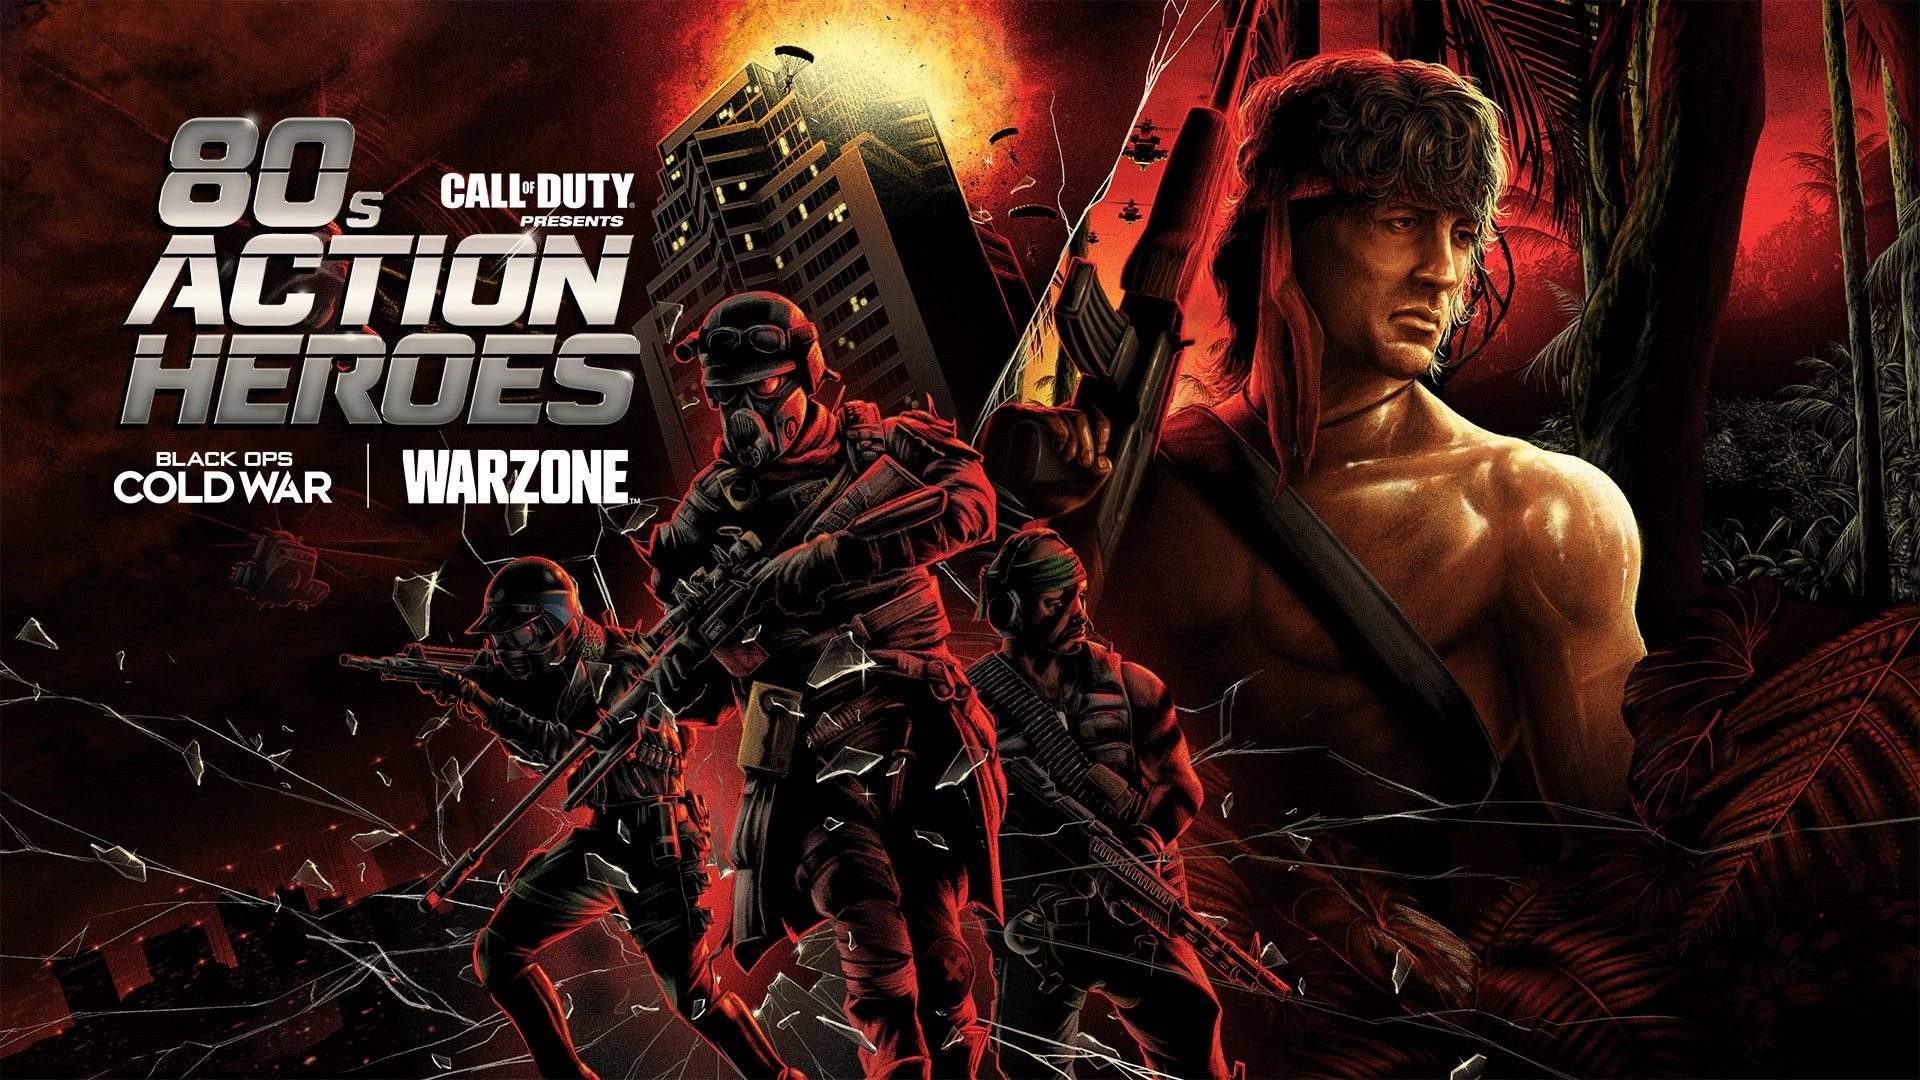 /call-of-duty-warzone-update-adds-rambo-and-john-mcclane-bb1534hr feature image